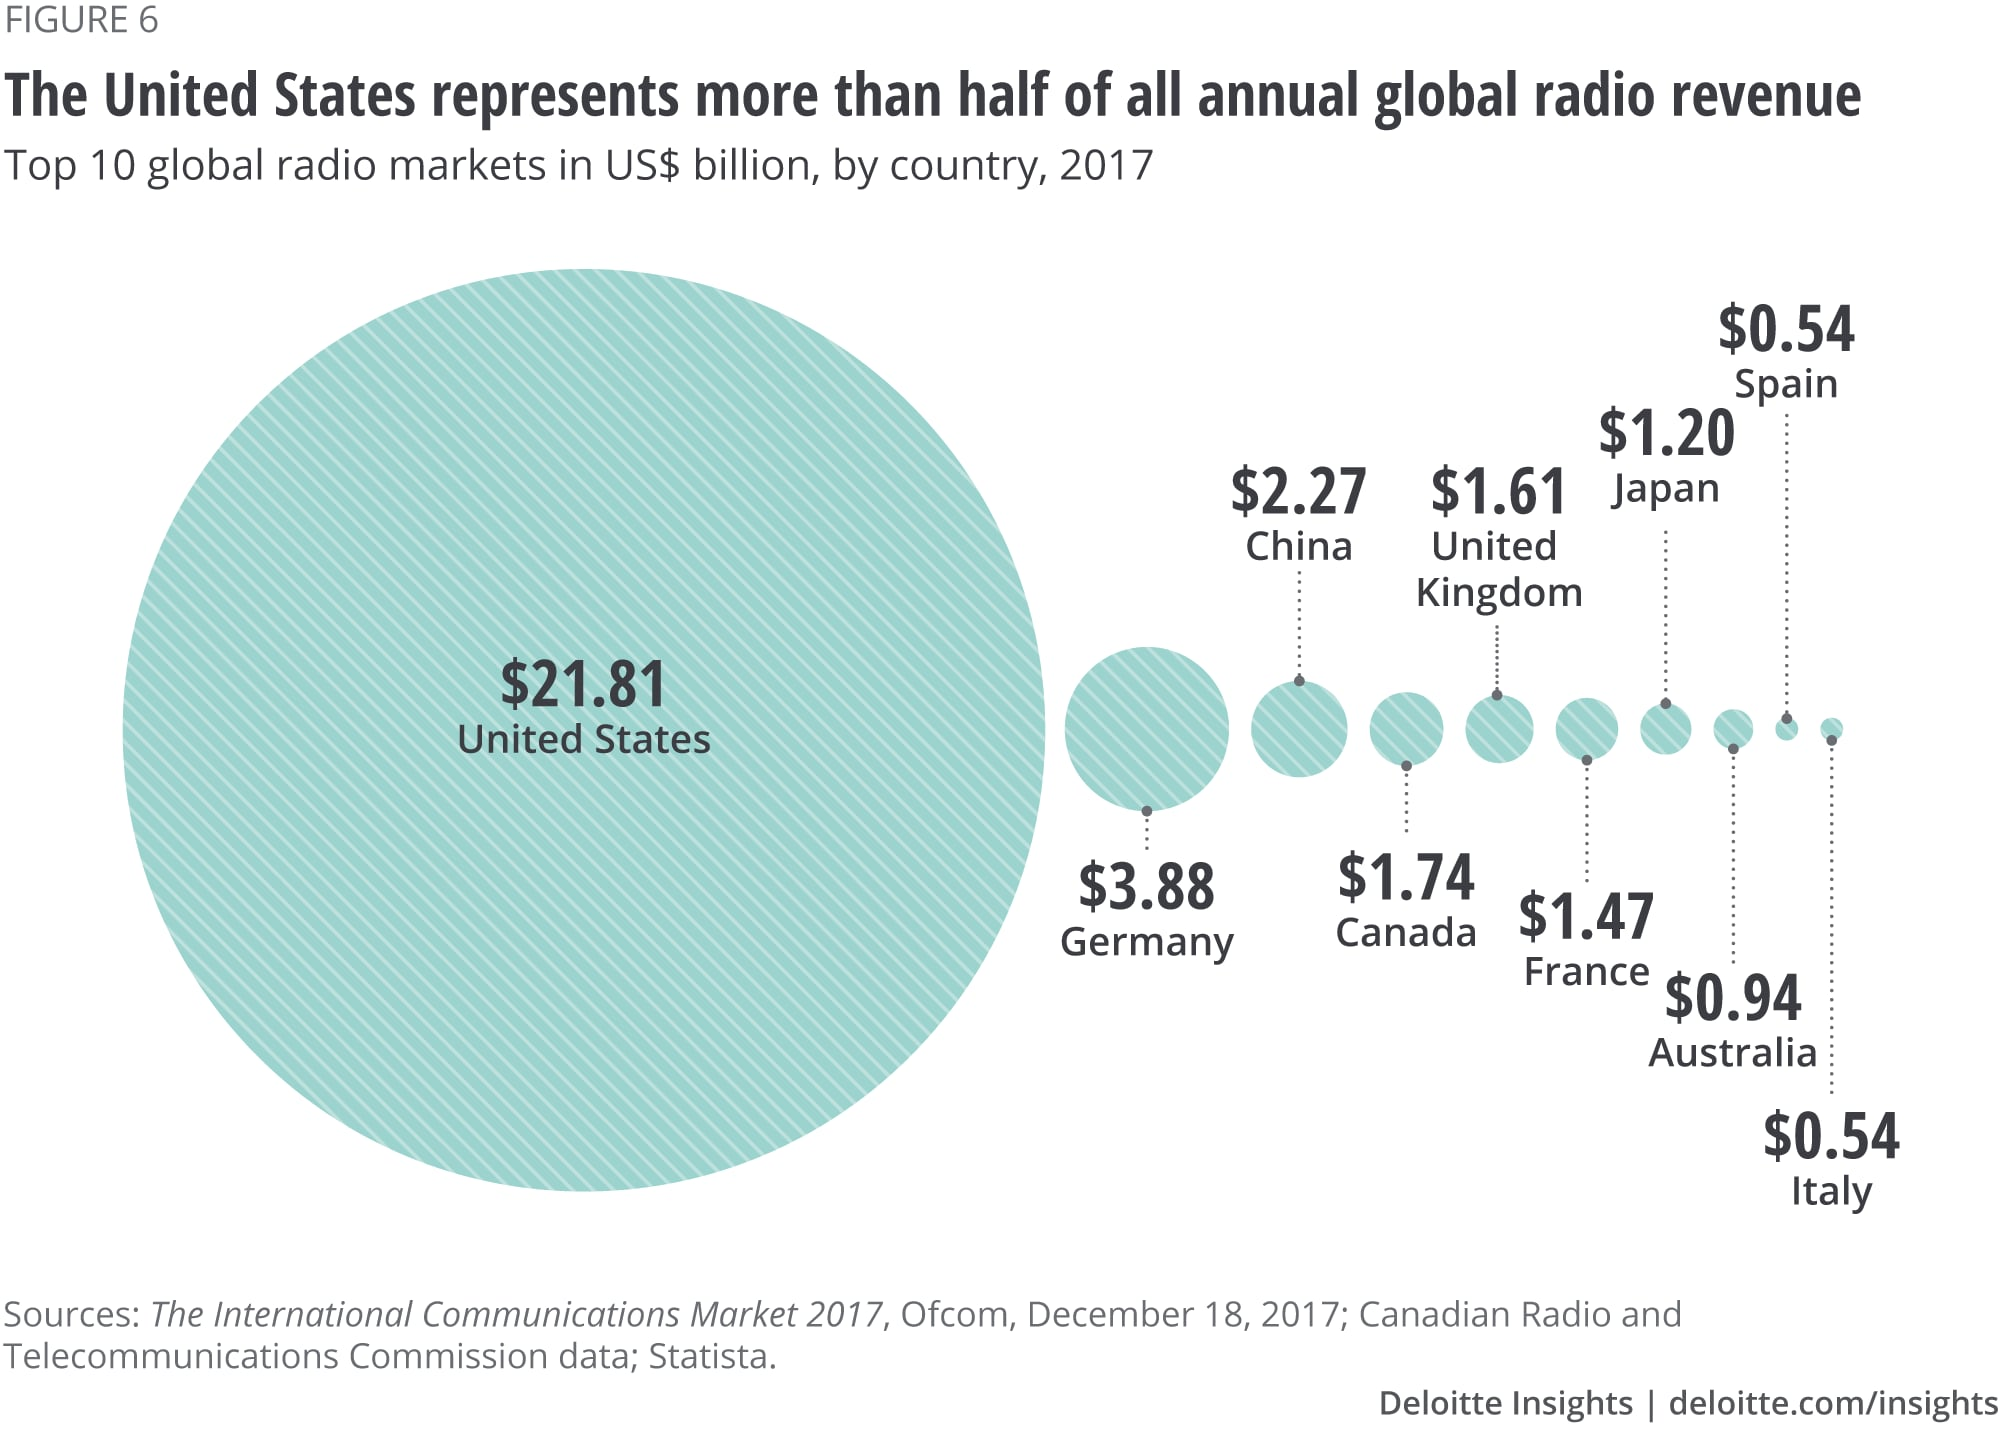 The United States represents more than half of all annual global radio revenue